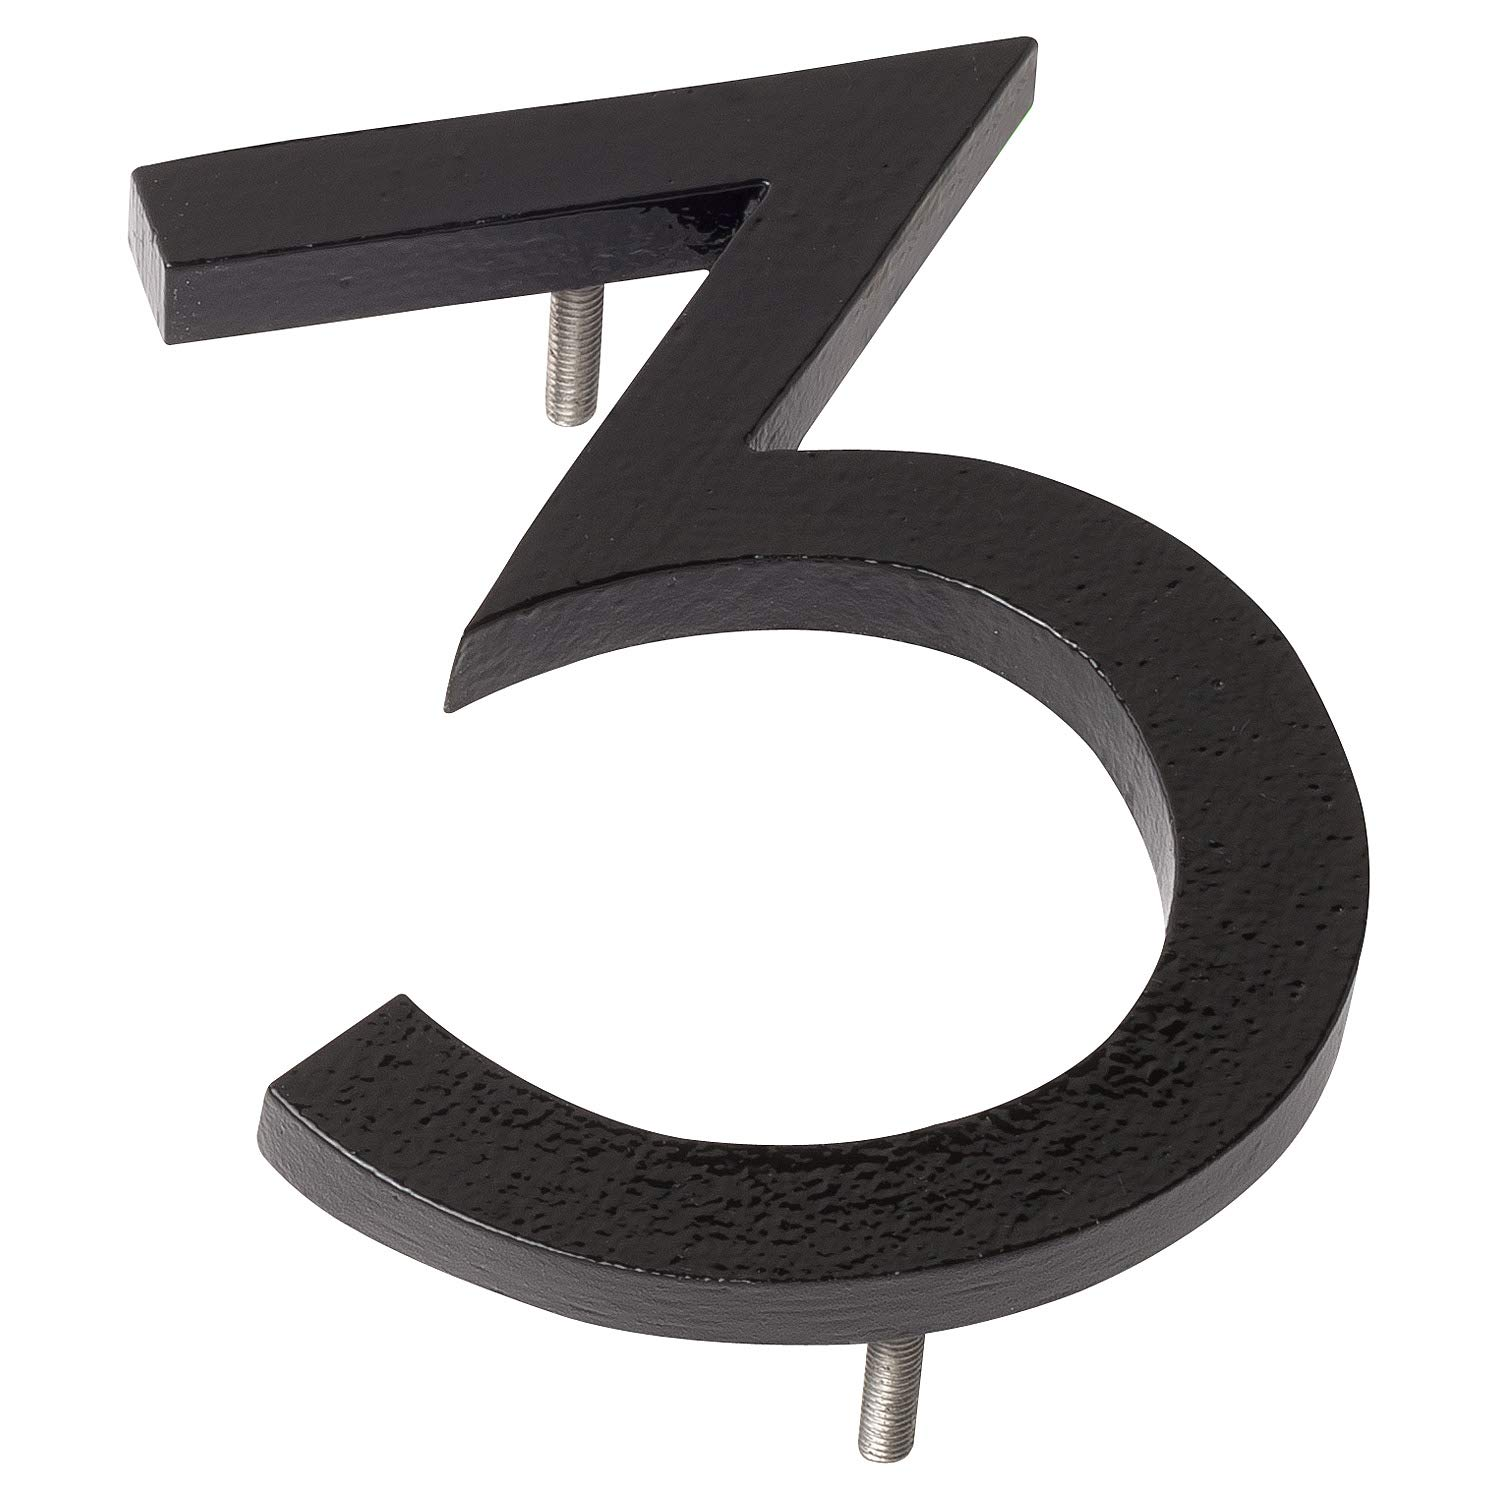 Montague Metal Products MHN-08-3-F-BK1 Floating House Number, 8' x 6' x 0.375' Black